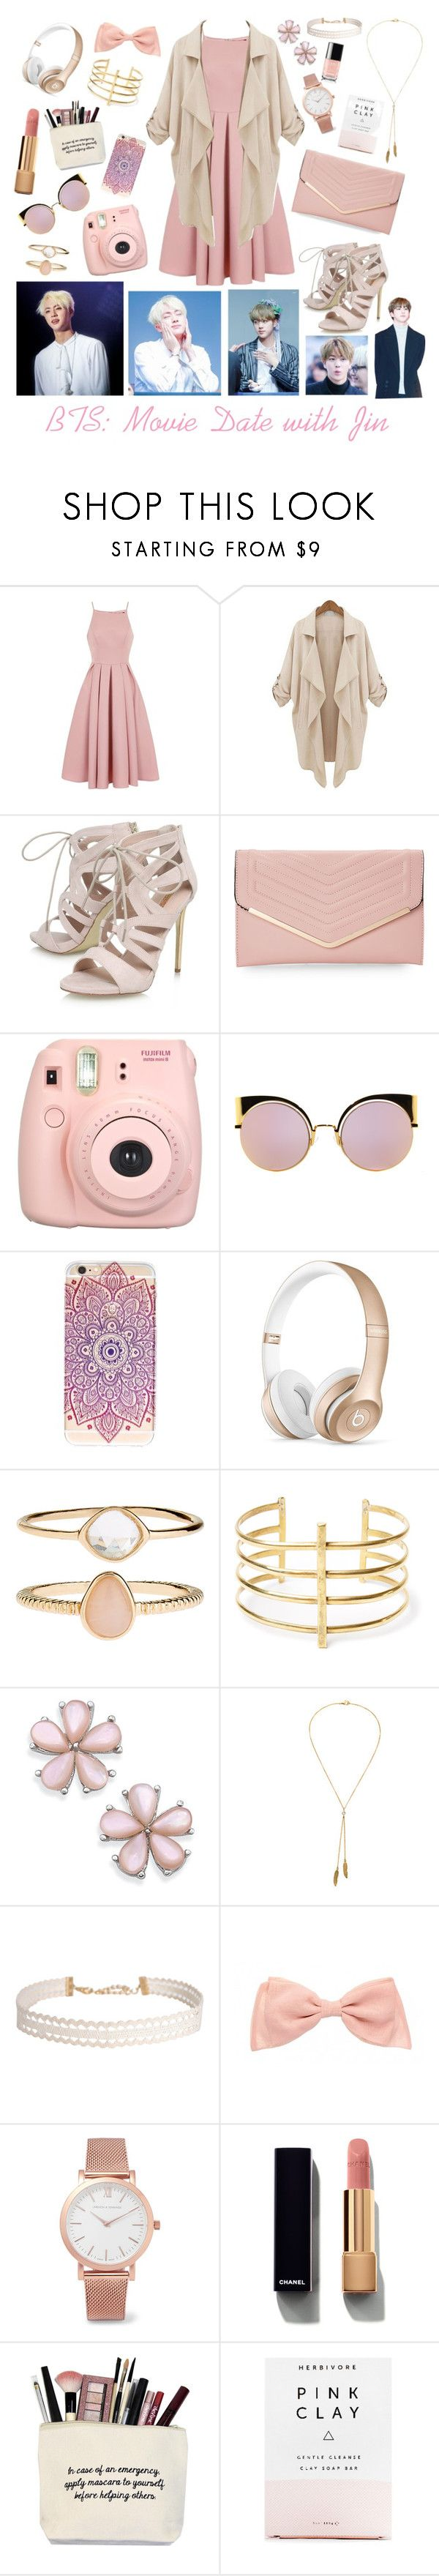 """""""BTS: Movie Date with Jin"""" by lily-x-kpop ❤ liked on Polyvore featuring Chi Chi, Carvela, Sasha, Fujifilm, Fendi, Beats by Dr. Dre, Accessorize, BauXo, Bølo and Humble Chic"""